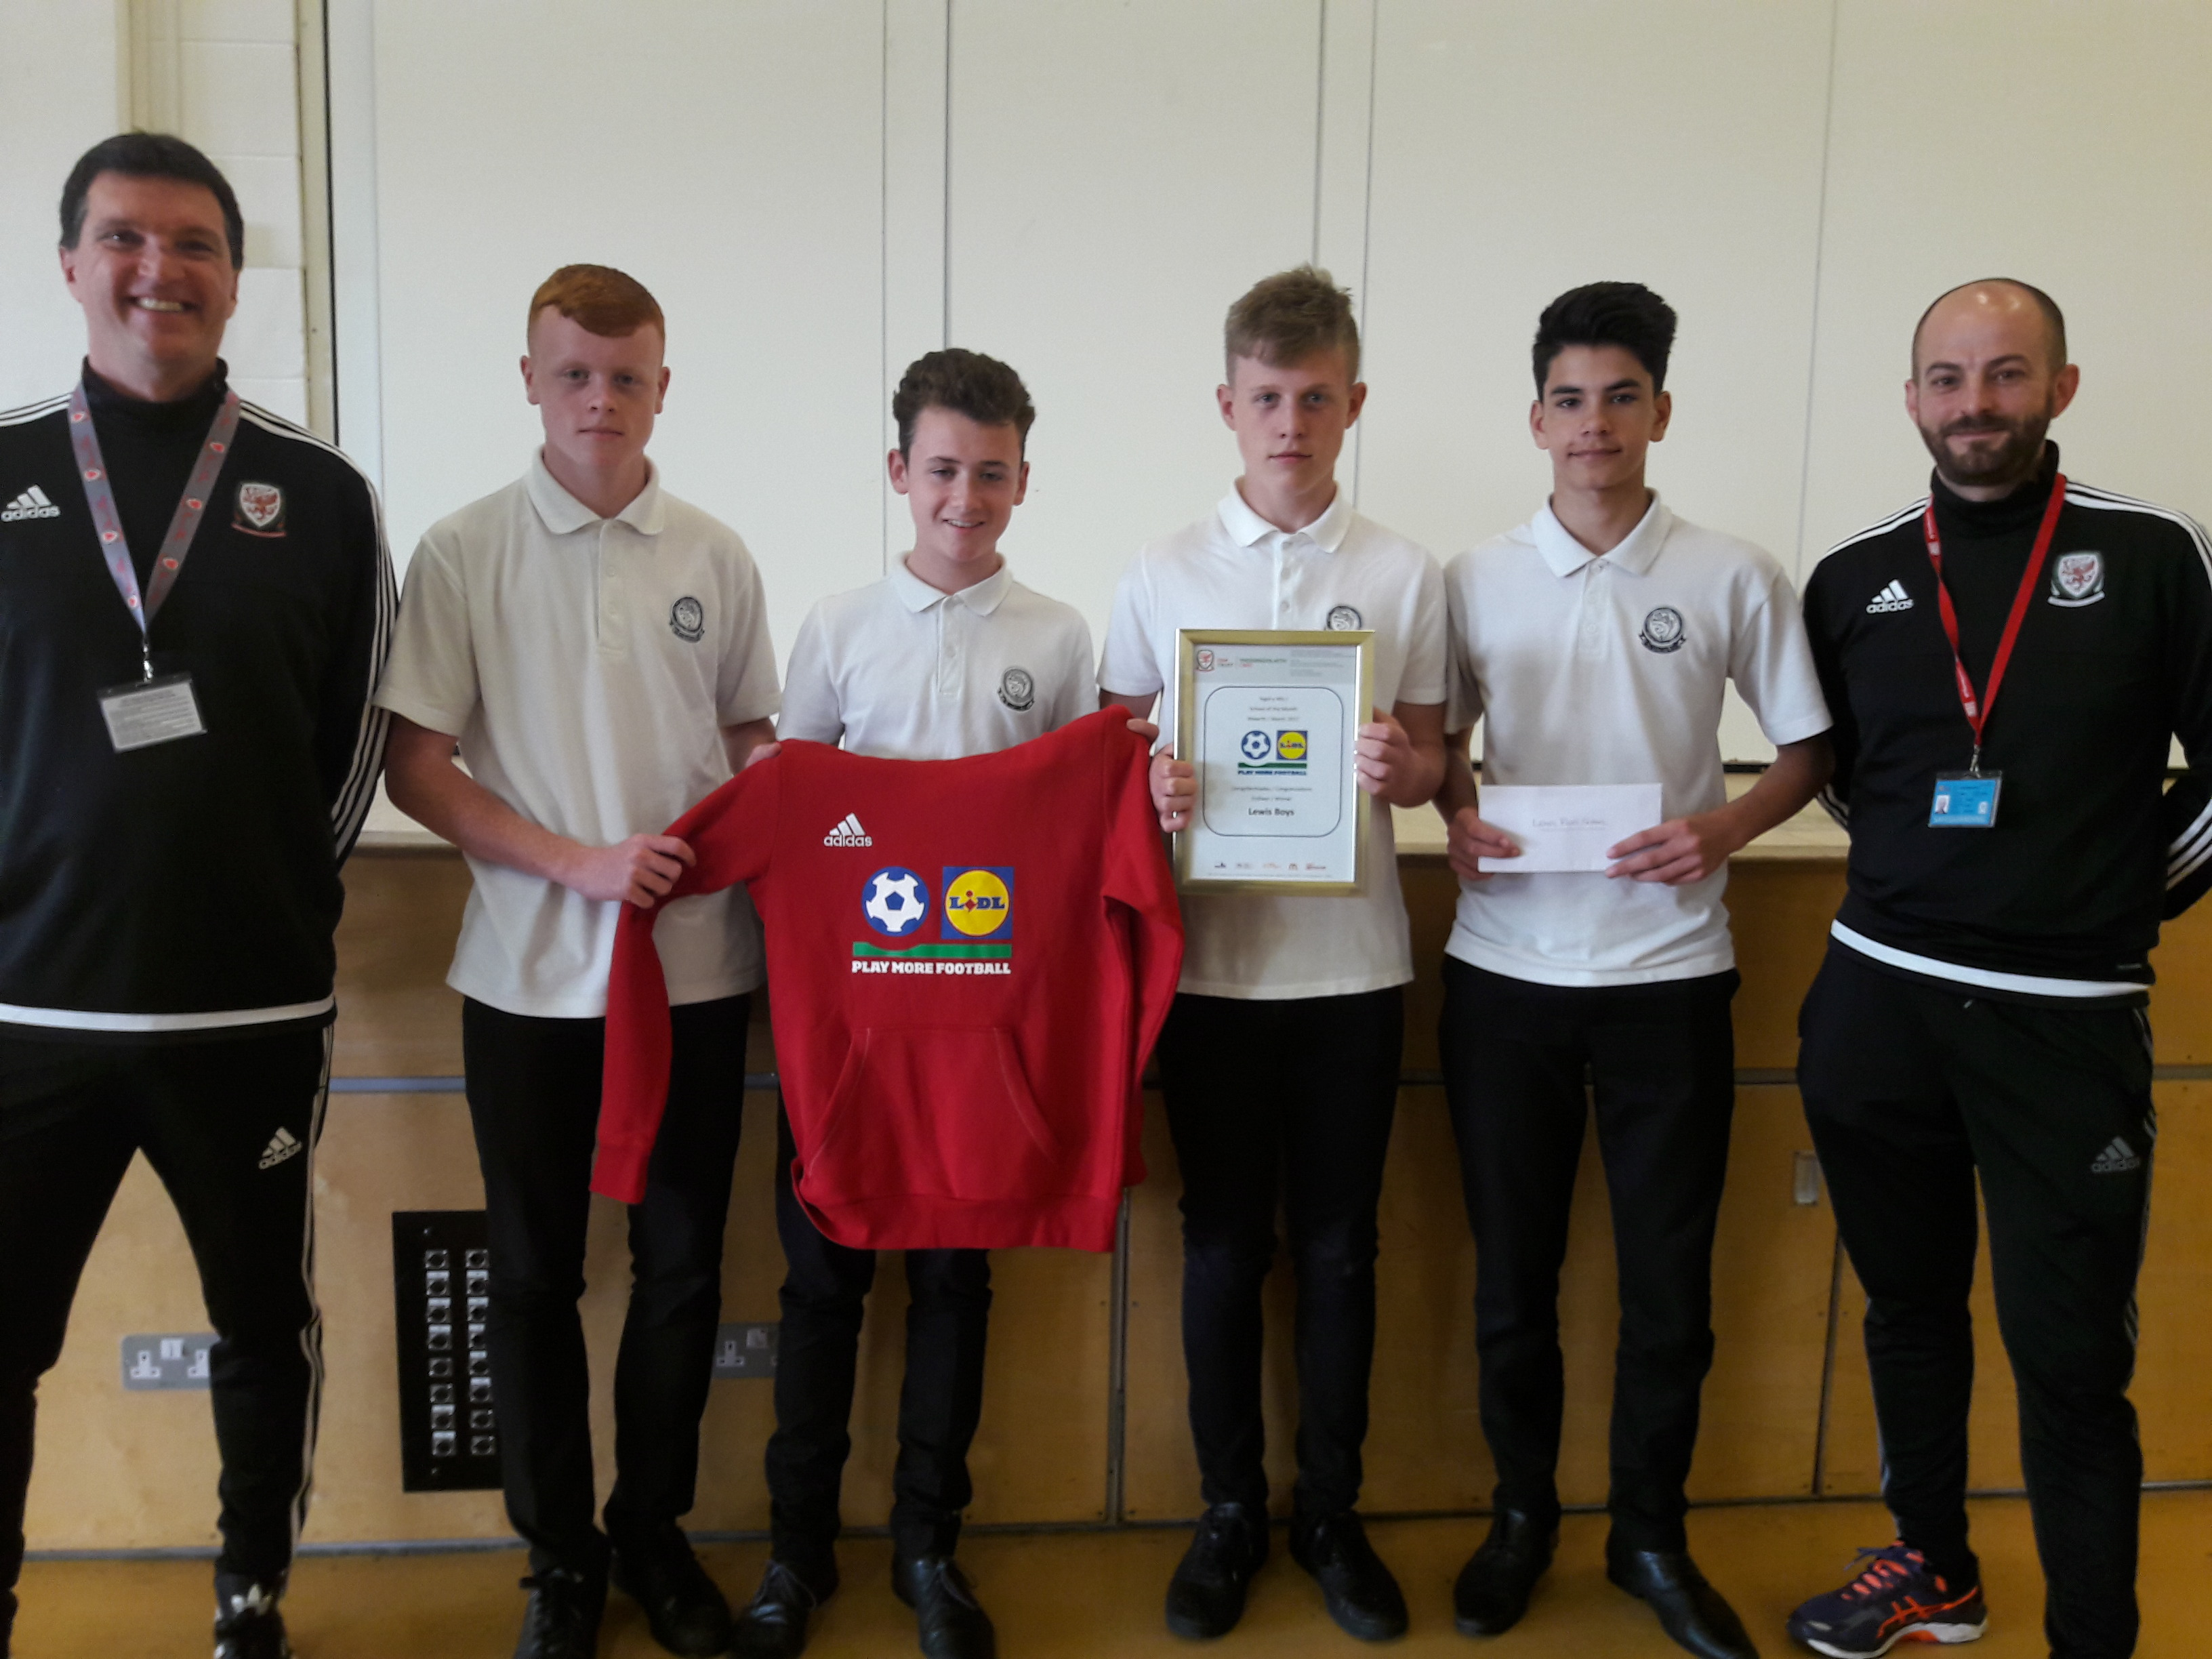 Lewis School Pengam win Lidl Play More Football School of the Month